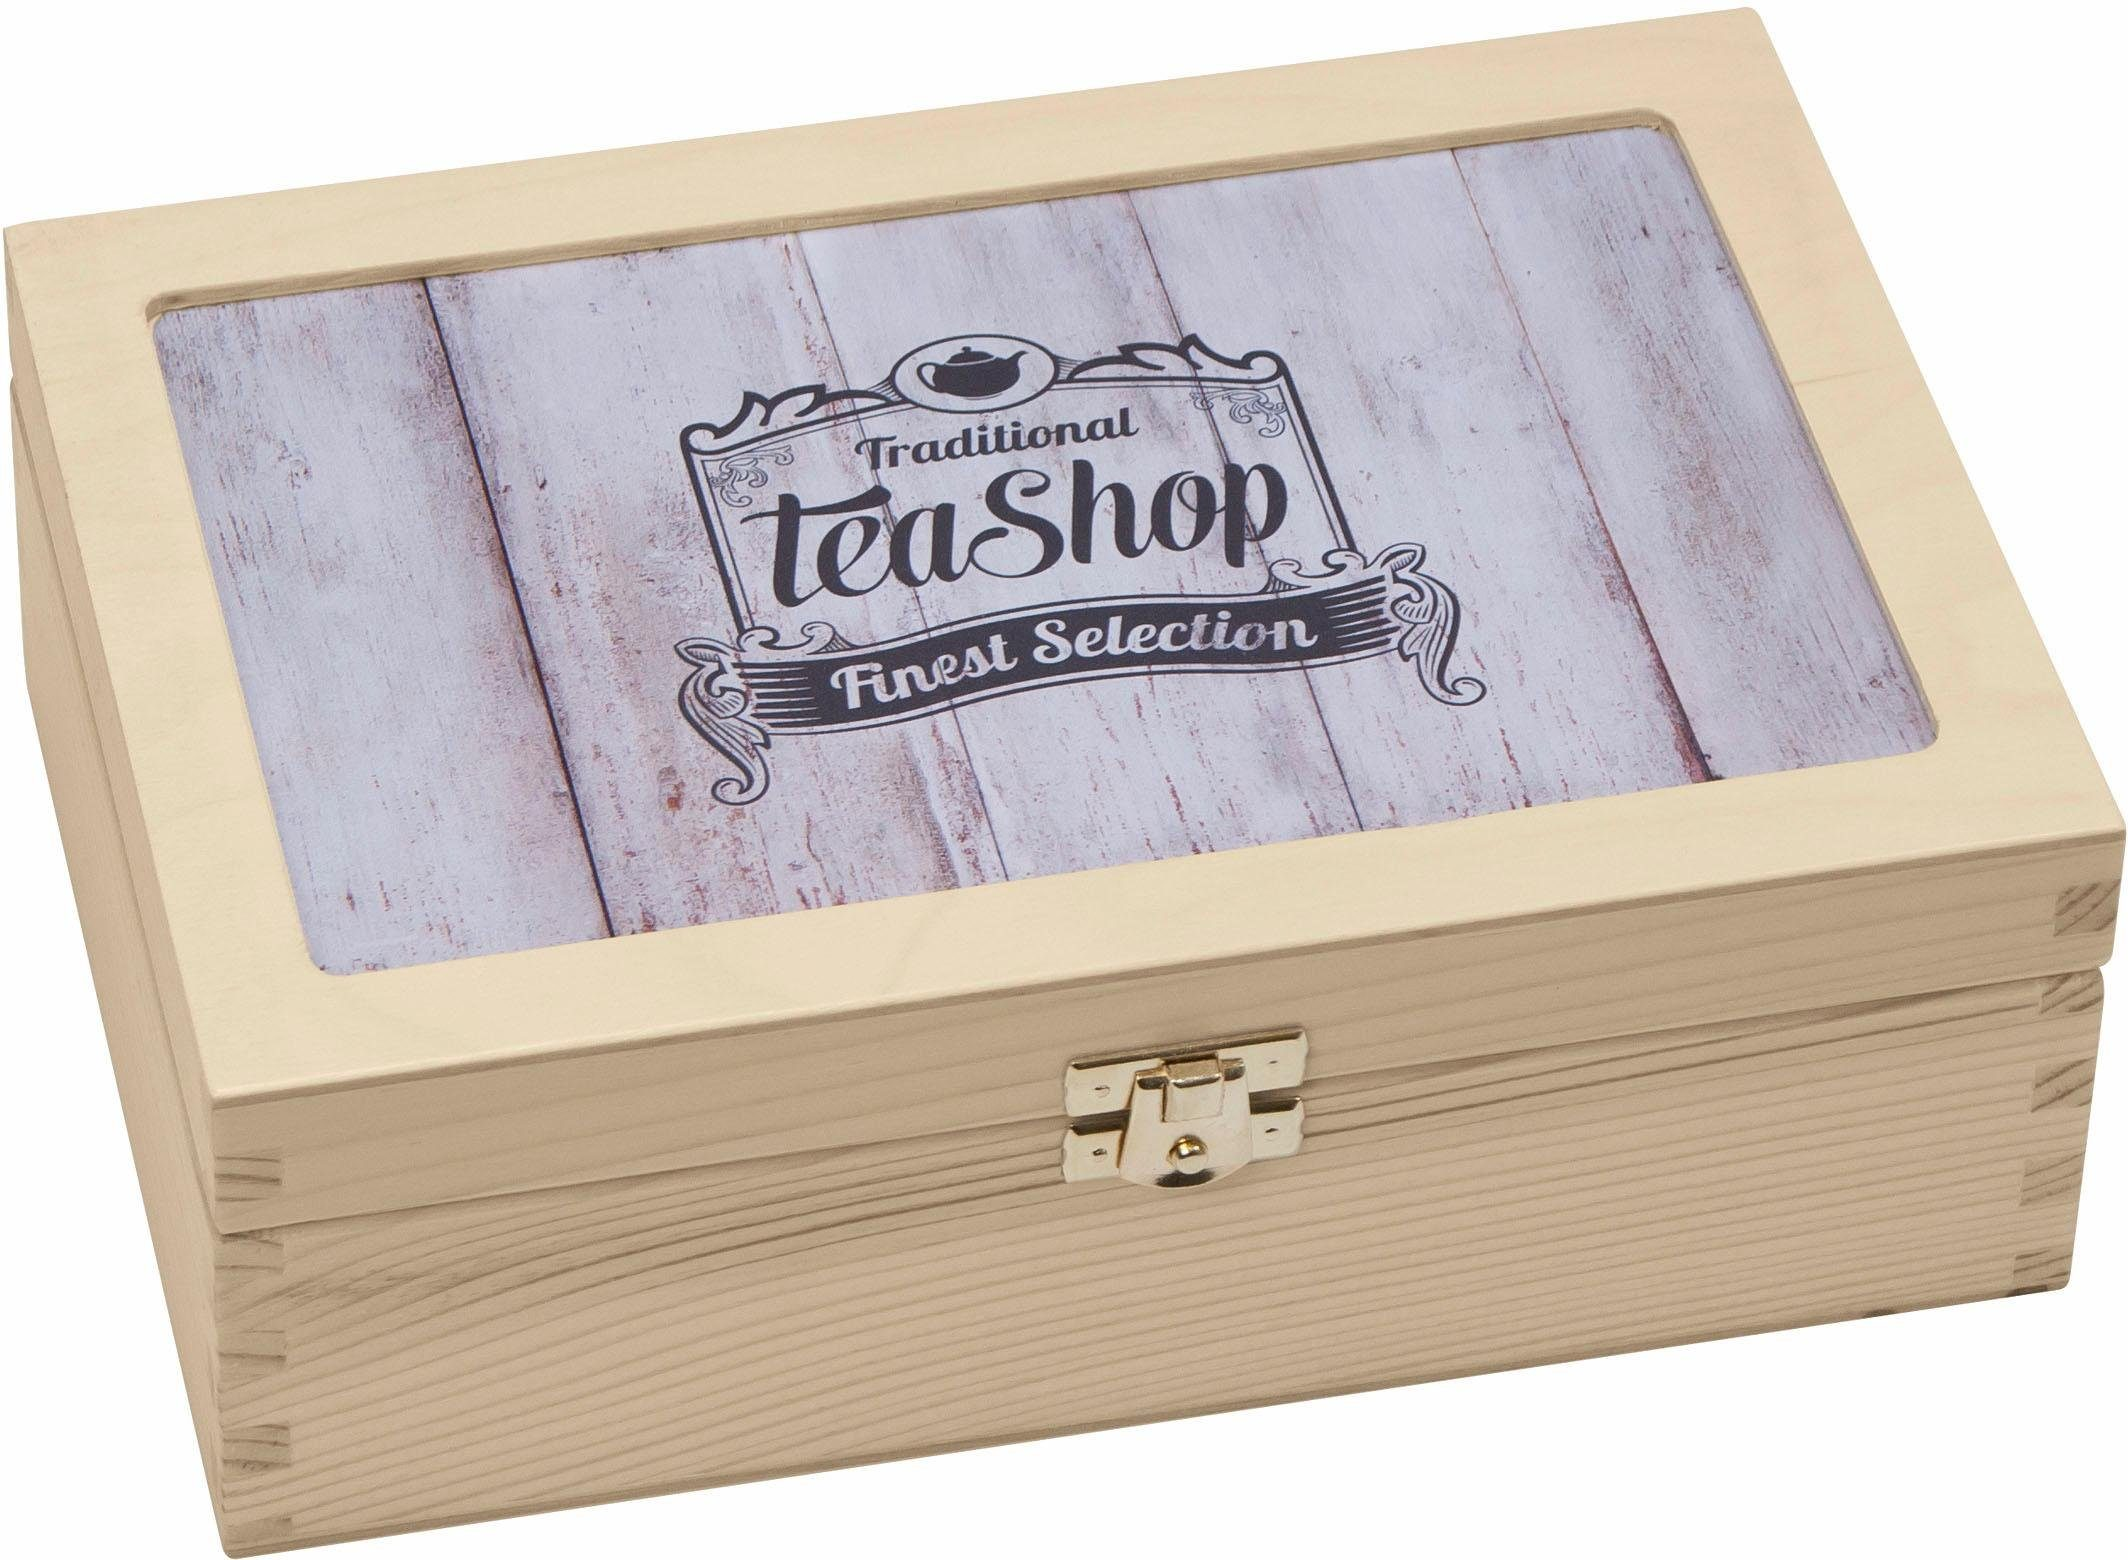 Contento Teebox »Traditional Tea-Shop Finest Selection«, Holz